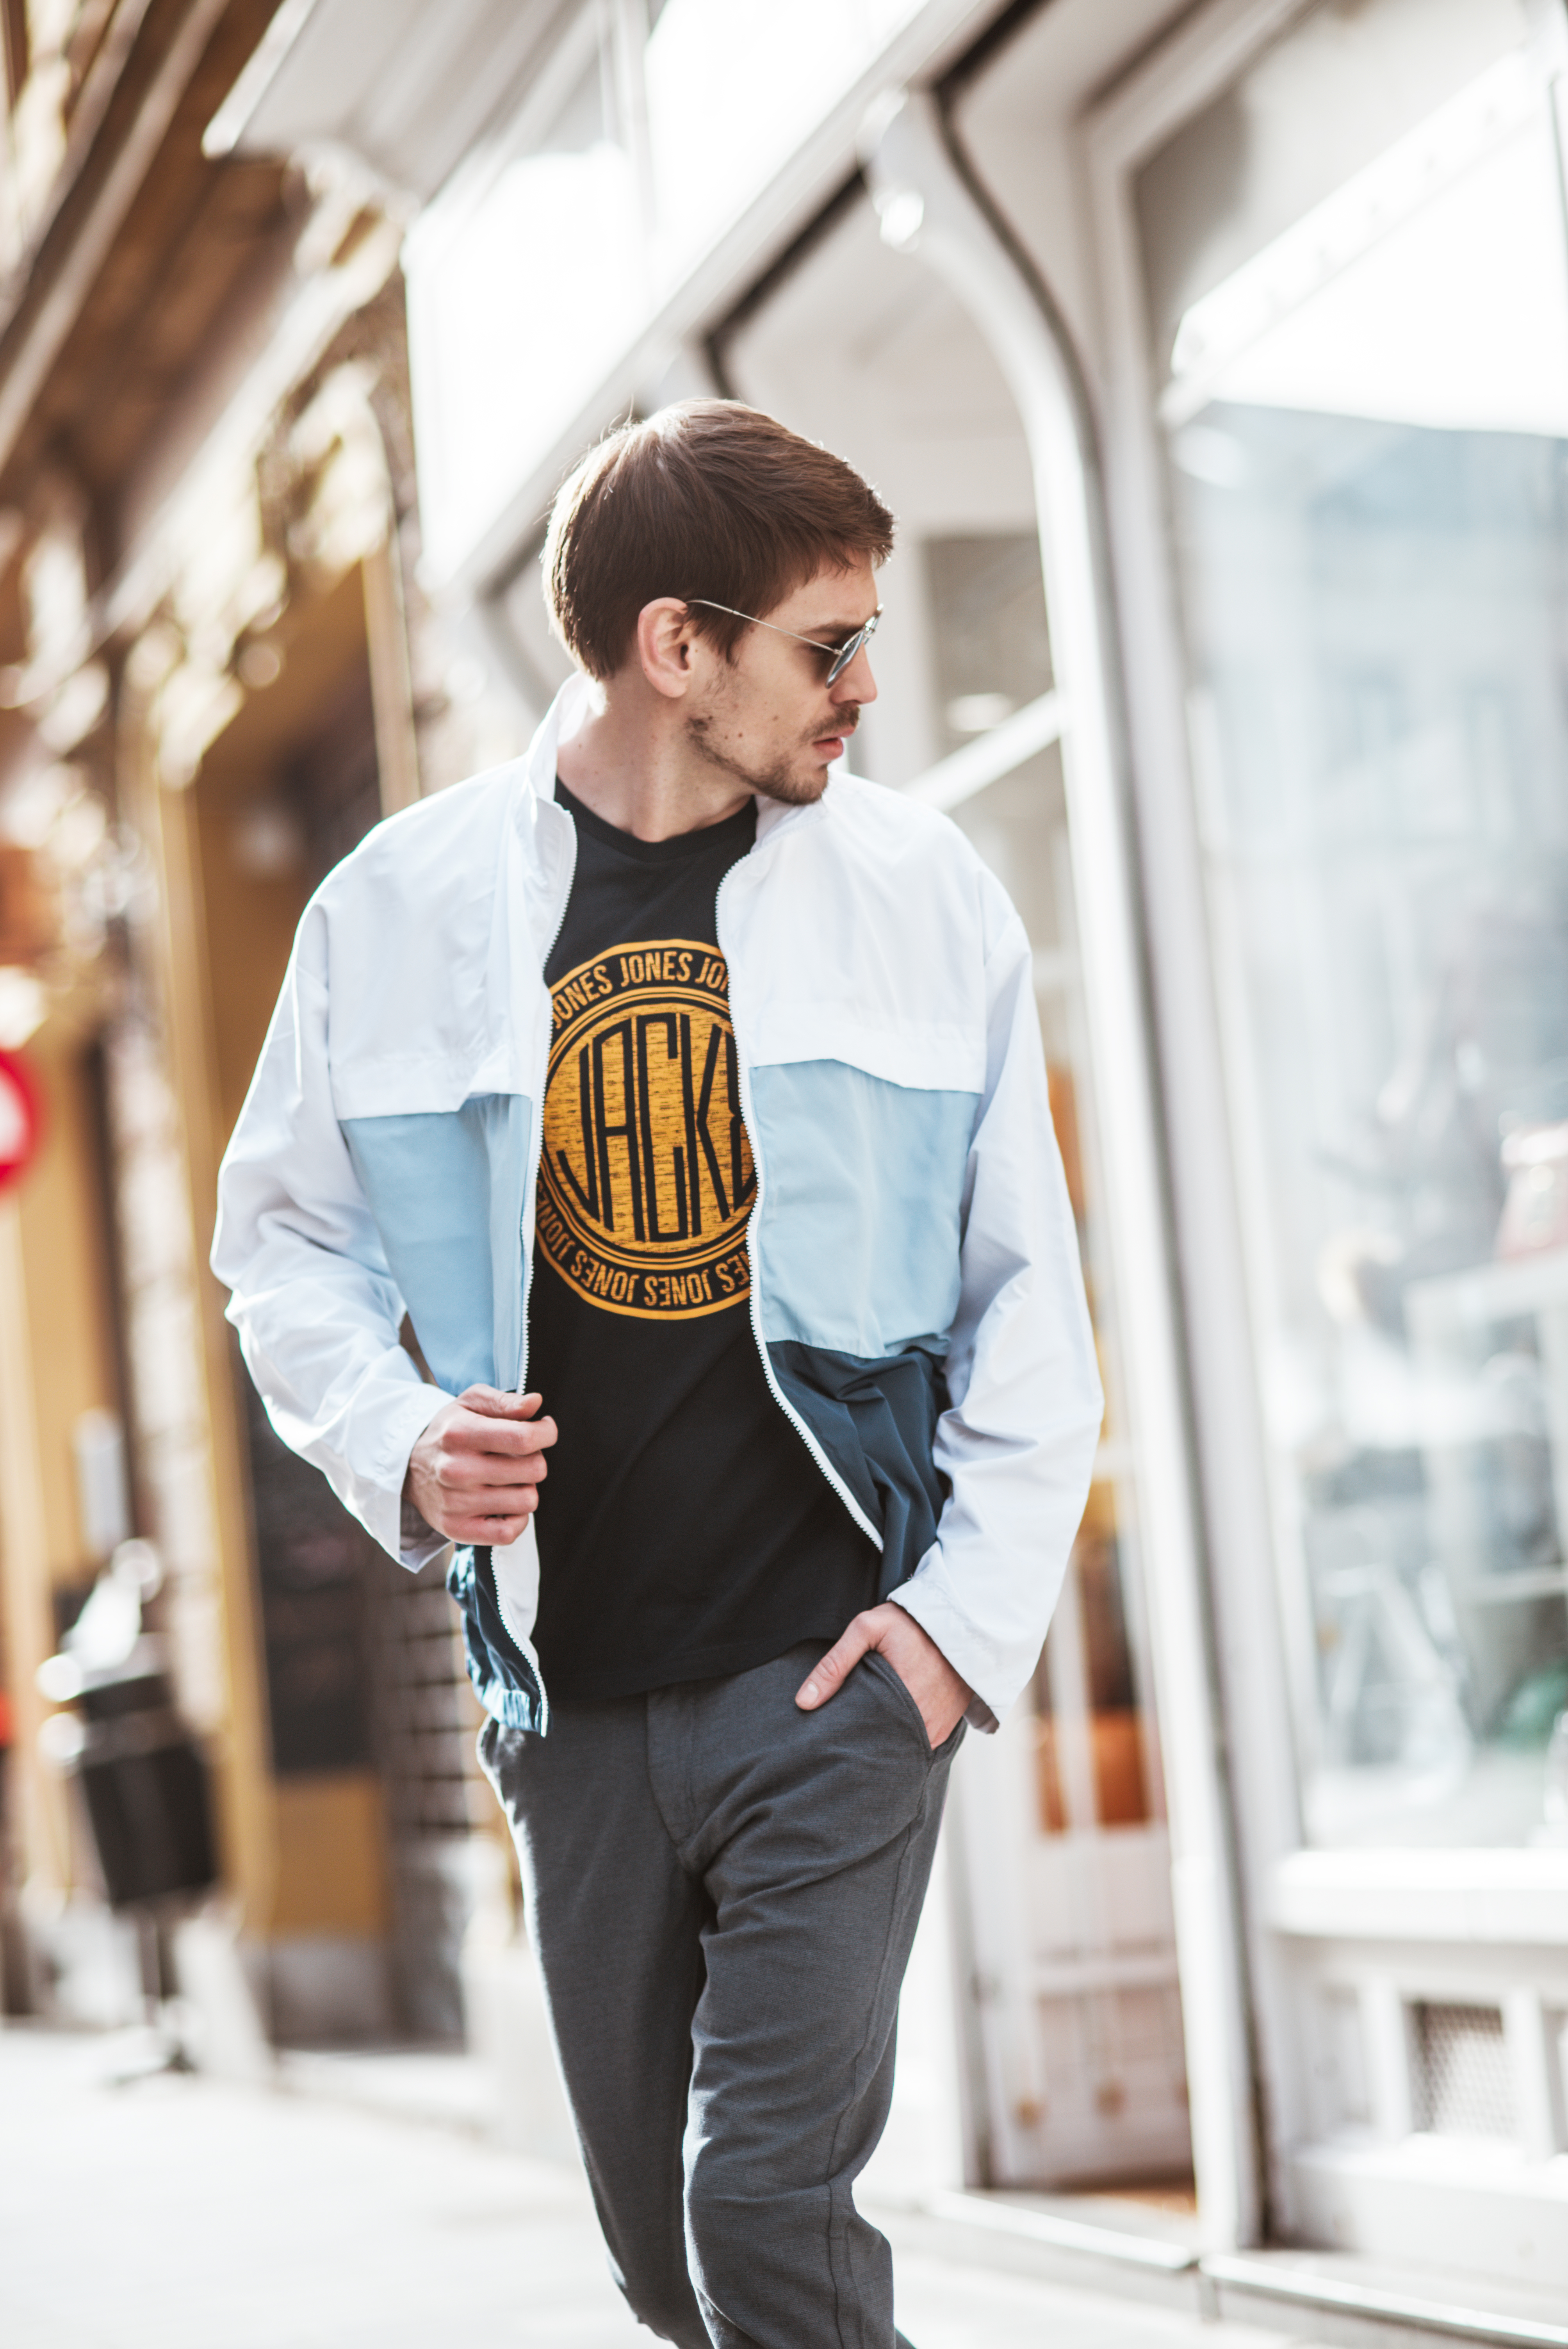 Majica Jack & Jones 10,99 € - Jakna Jack & Jones 64,99 € - Farmerke Jack & Jones 64,99 €